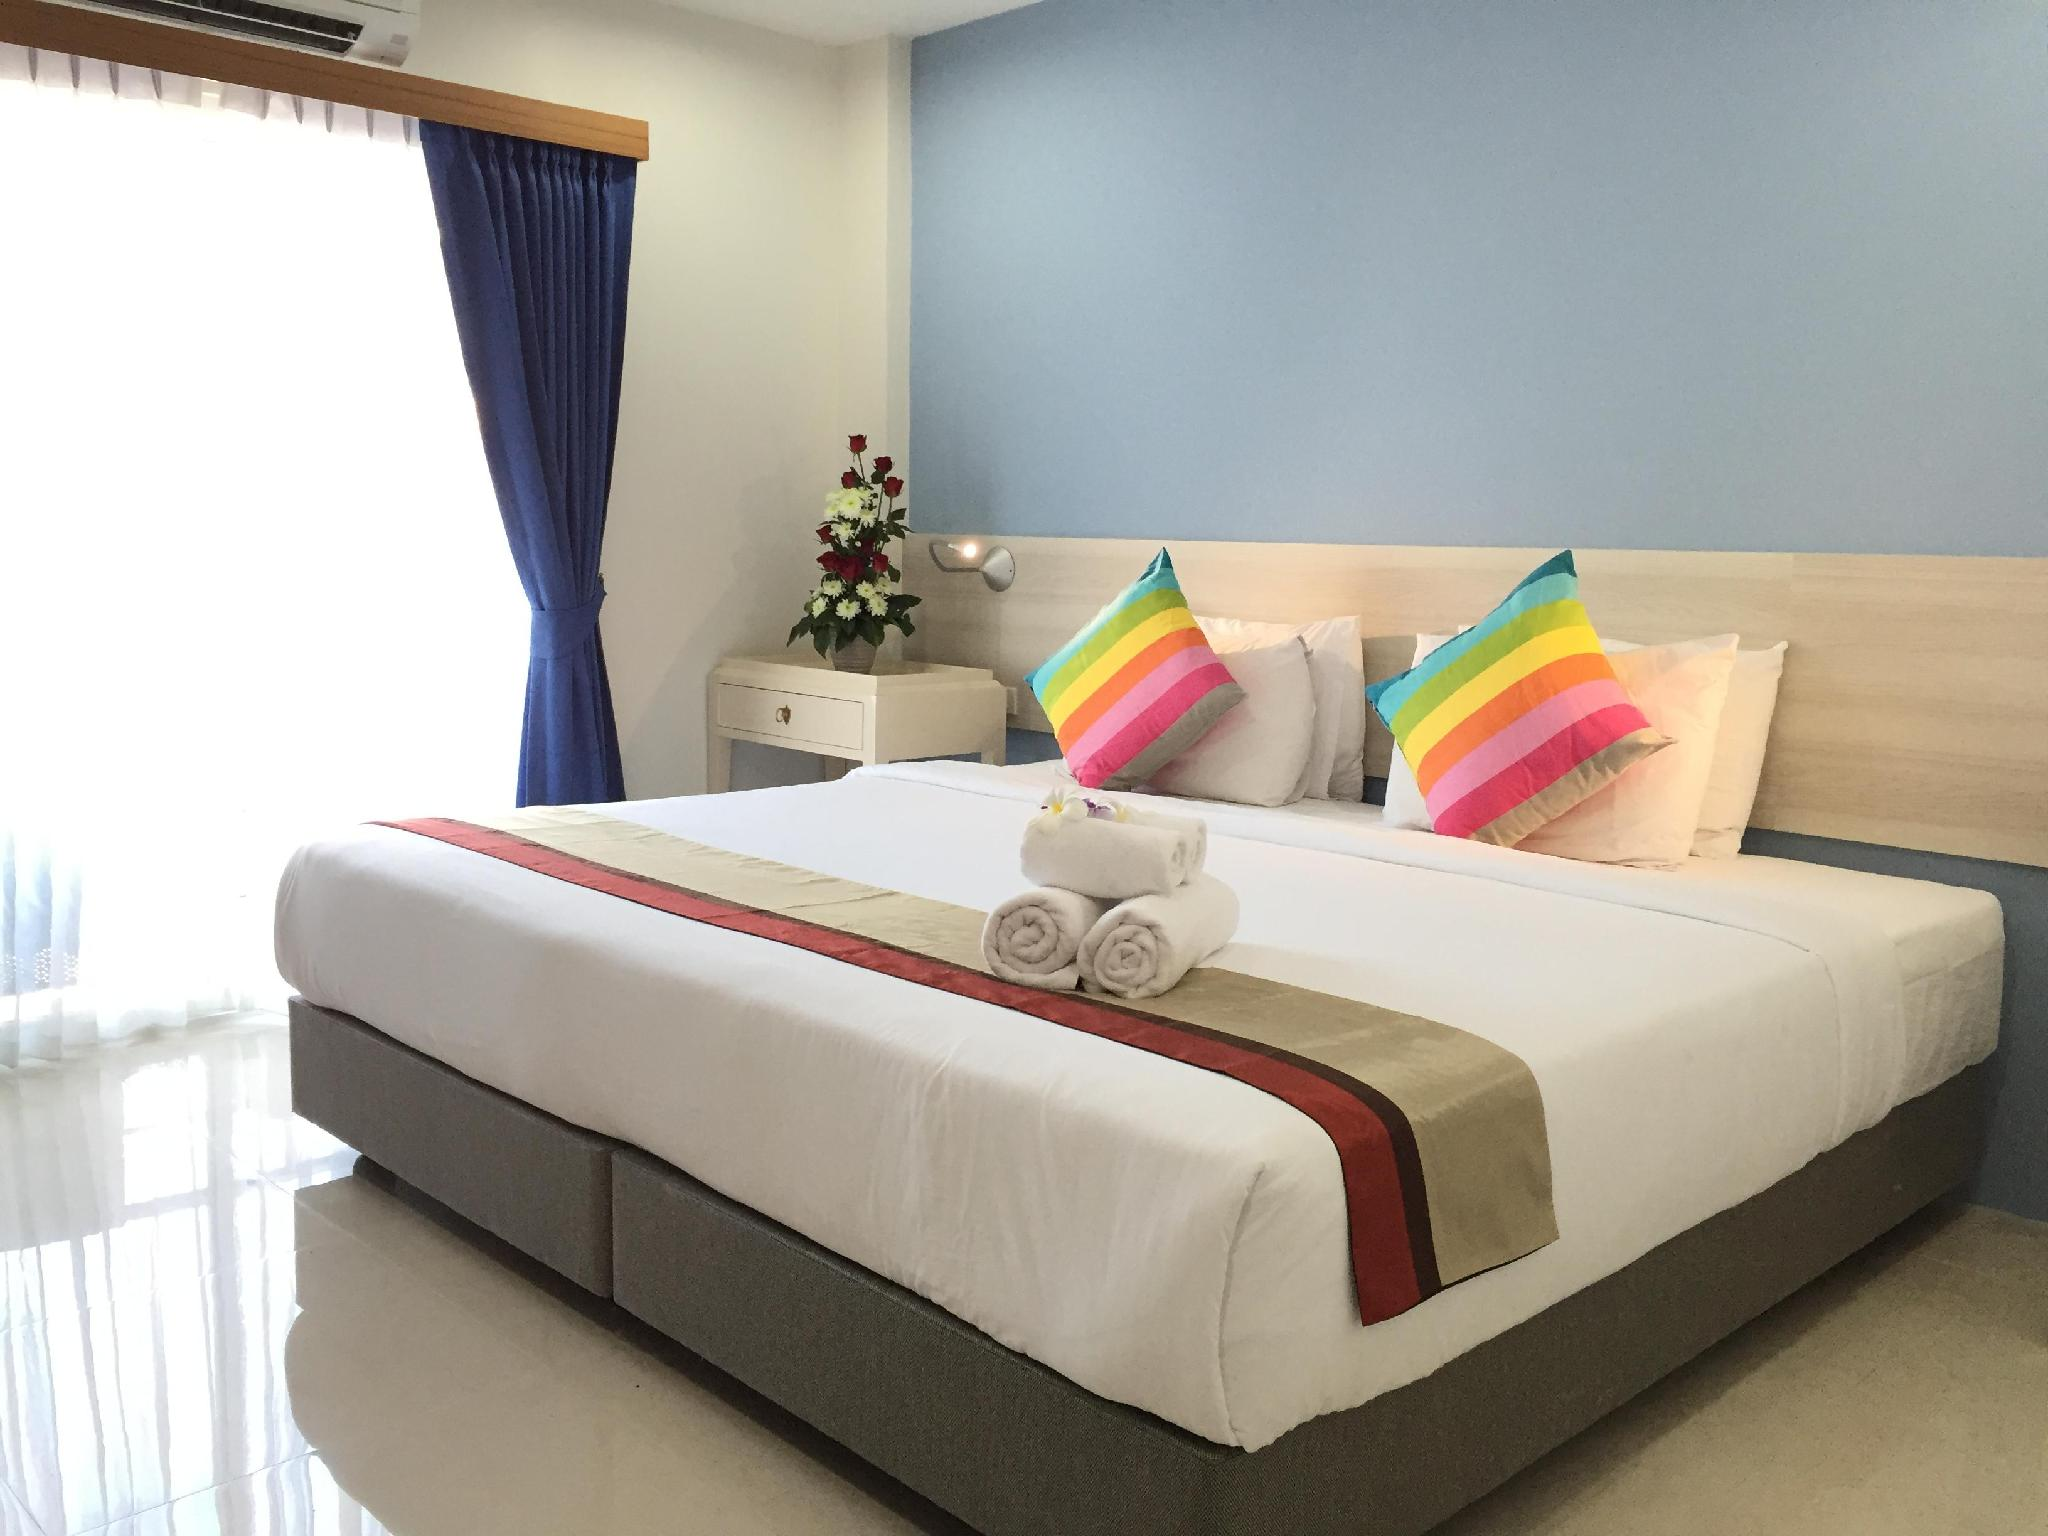 Chic N Chill Bed and Breakfast - Hotell och Boende i Thailand i Asien